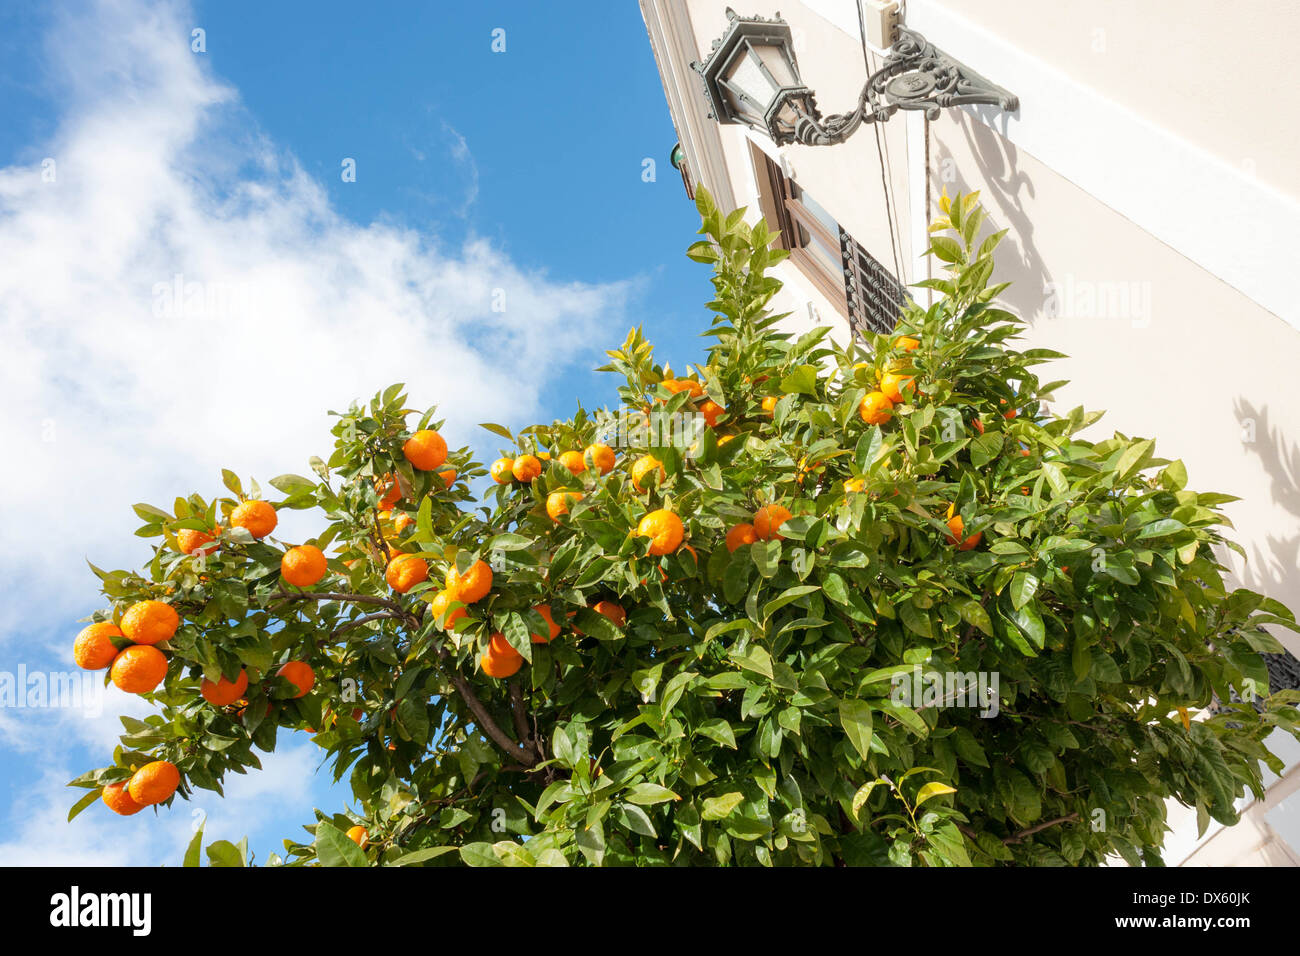 Orange trees on the streets of La Ronda in Andalusia, Southern Spain. - Stock Image